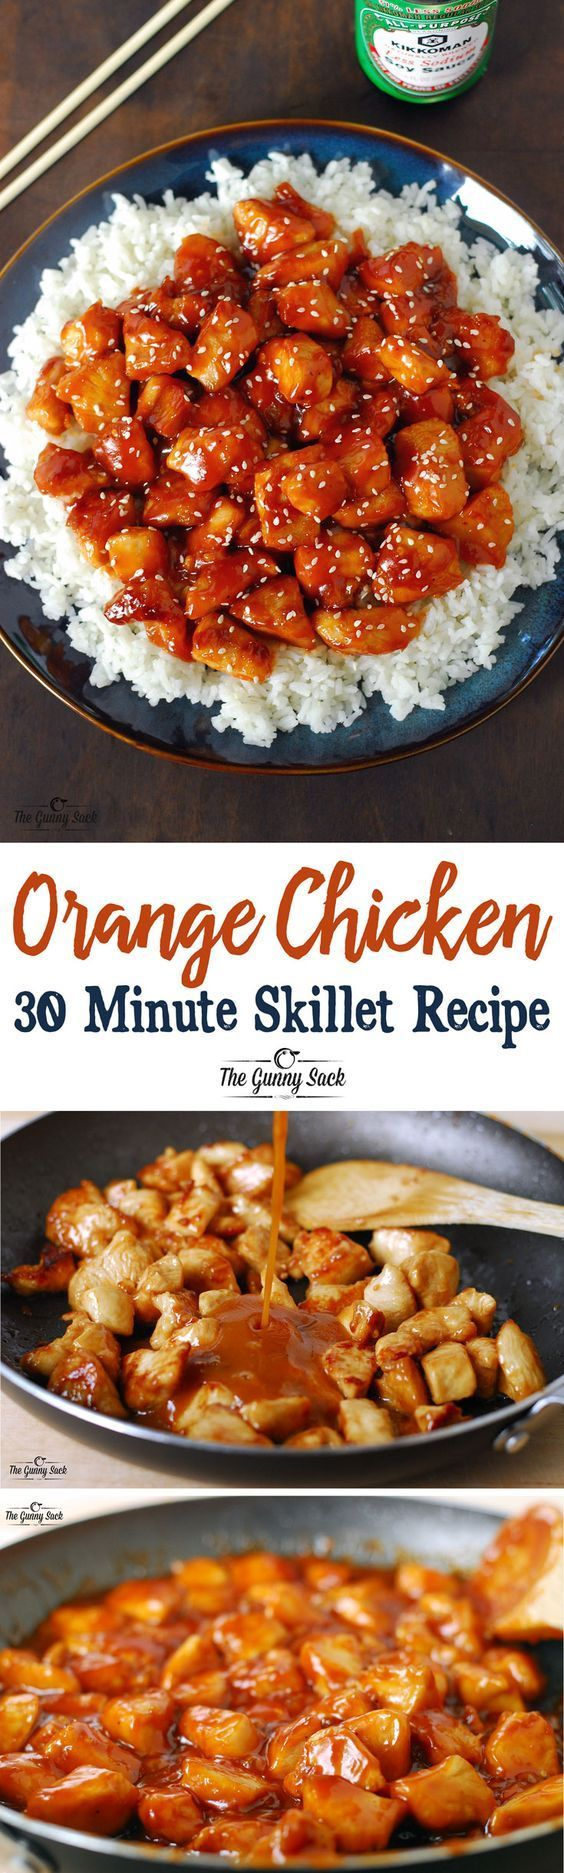 Orange Chicken 30 Minutes Skillet